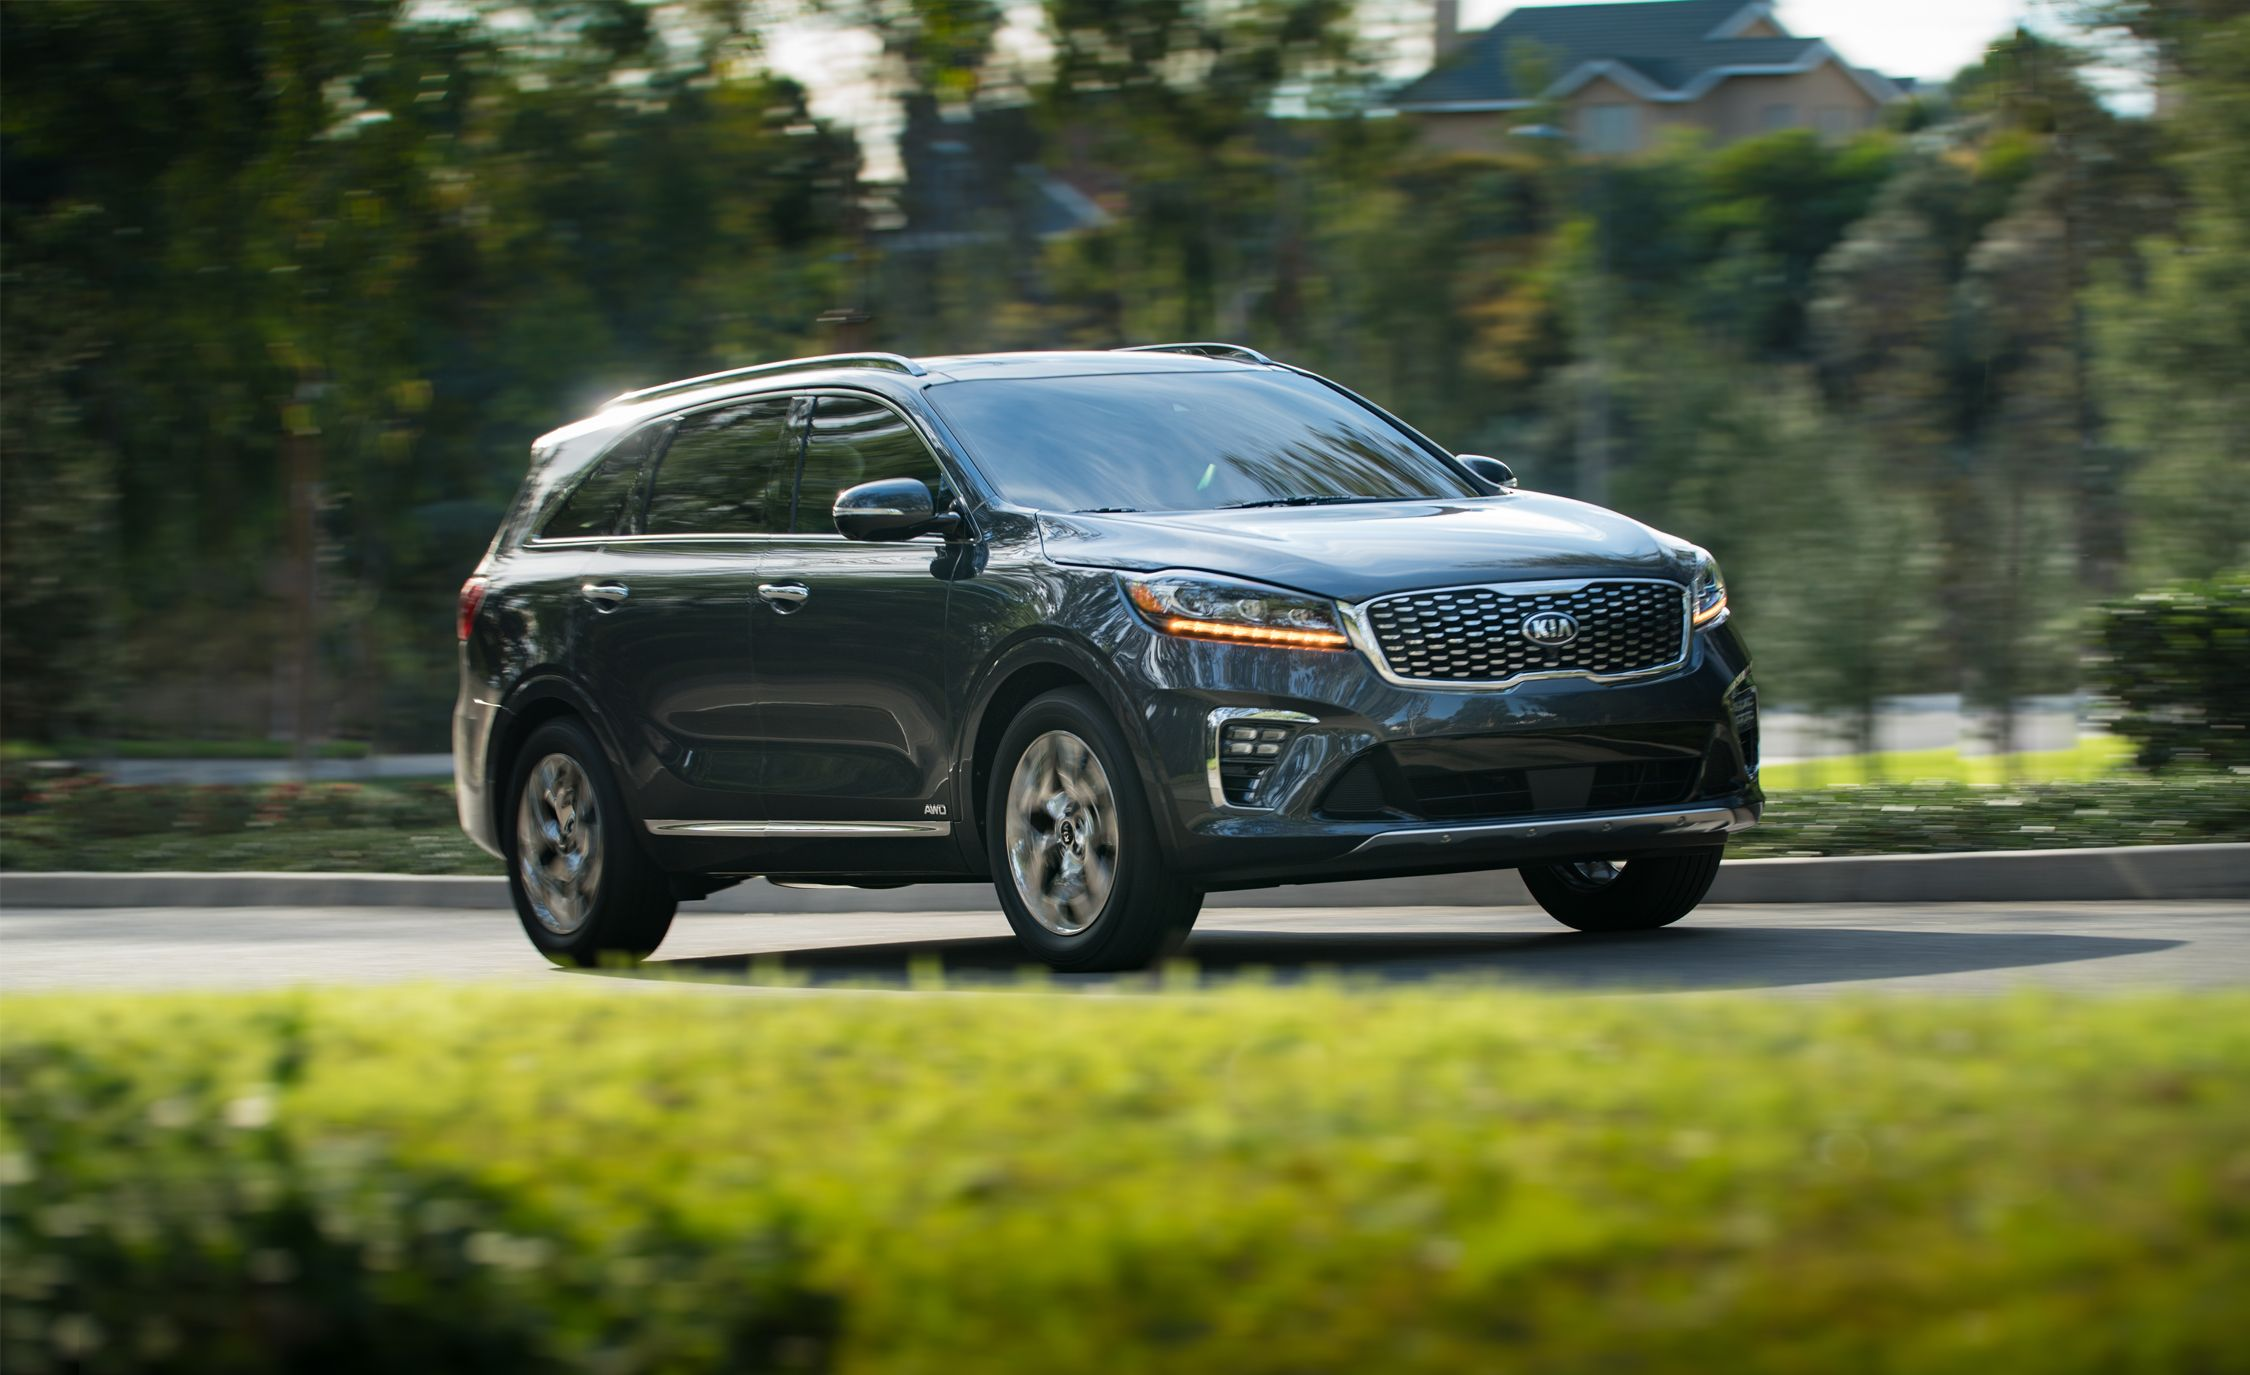 2019 kia sorento first drive updated to keep pace review car and driver. Black Bedroom Furniture Sets. Home Design Ideas